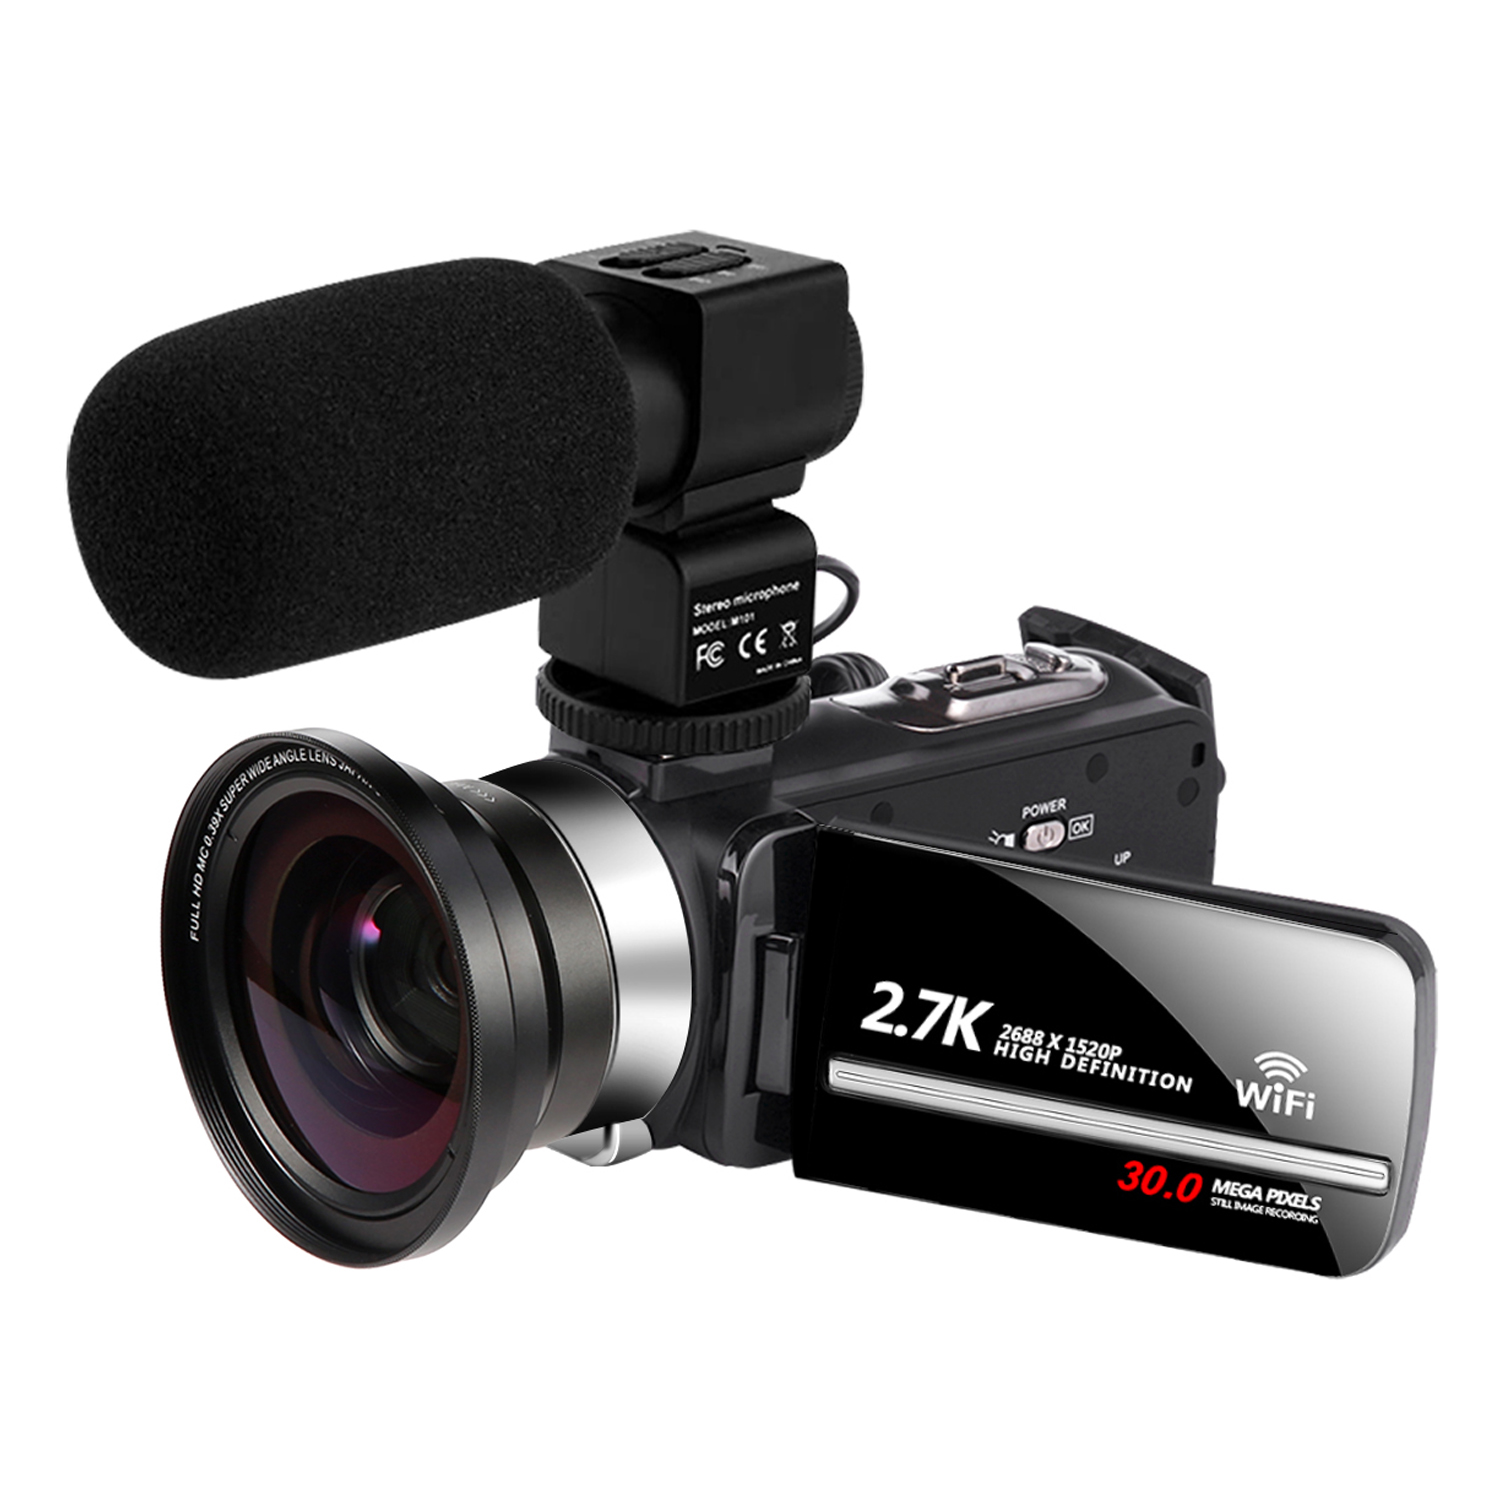 2.7K Video Camcorder for YouTube Vlogging WiFi Camera 30MP 3.0 inch <strong>Touch</strong> <strong>Screen</strong> 16X Digital ZOOM 1080P Digital Video Camera